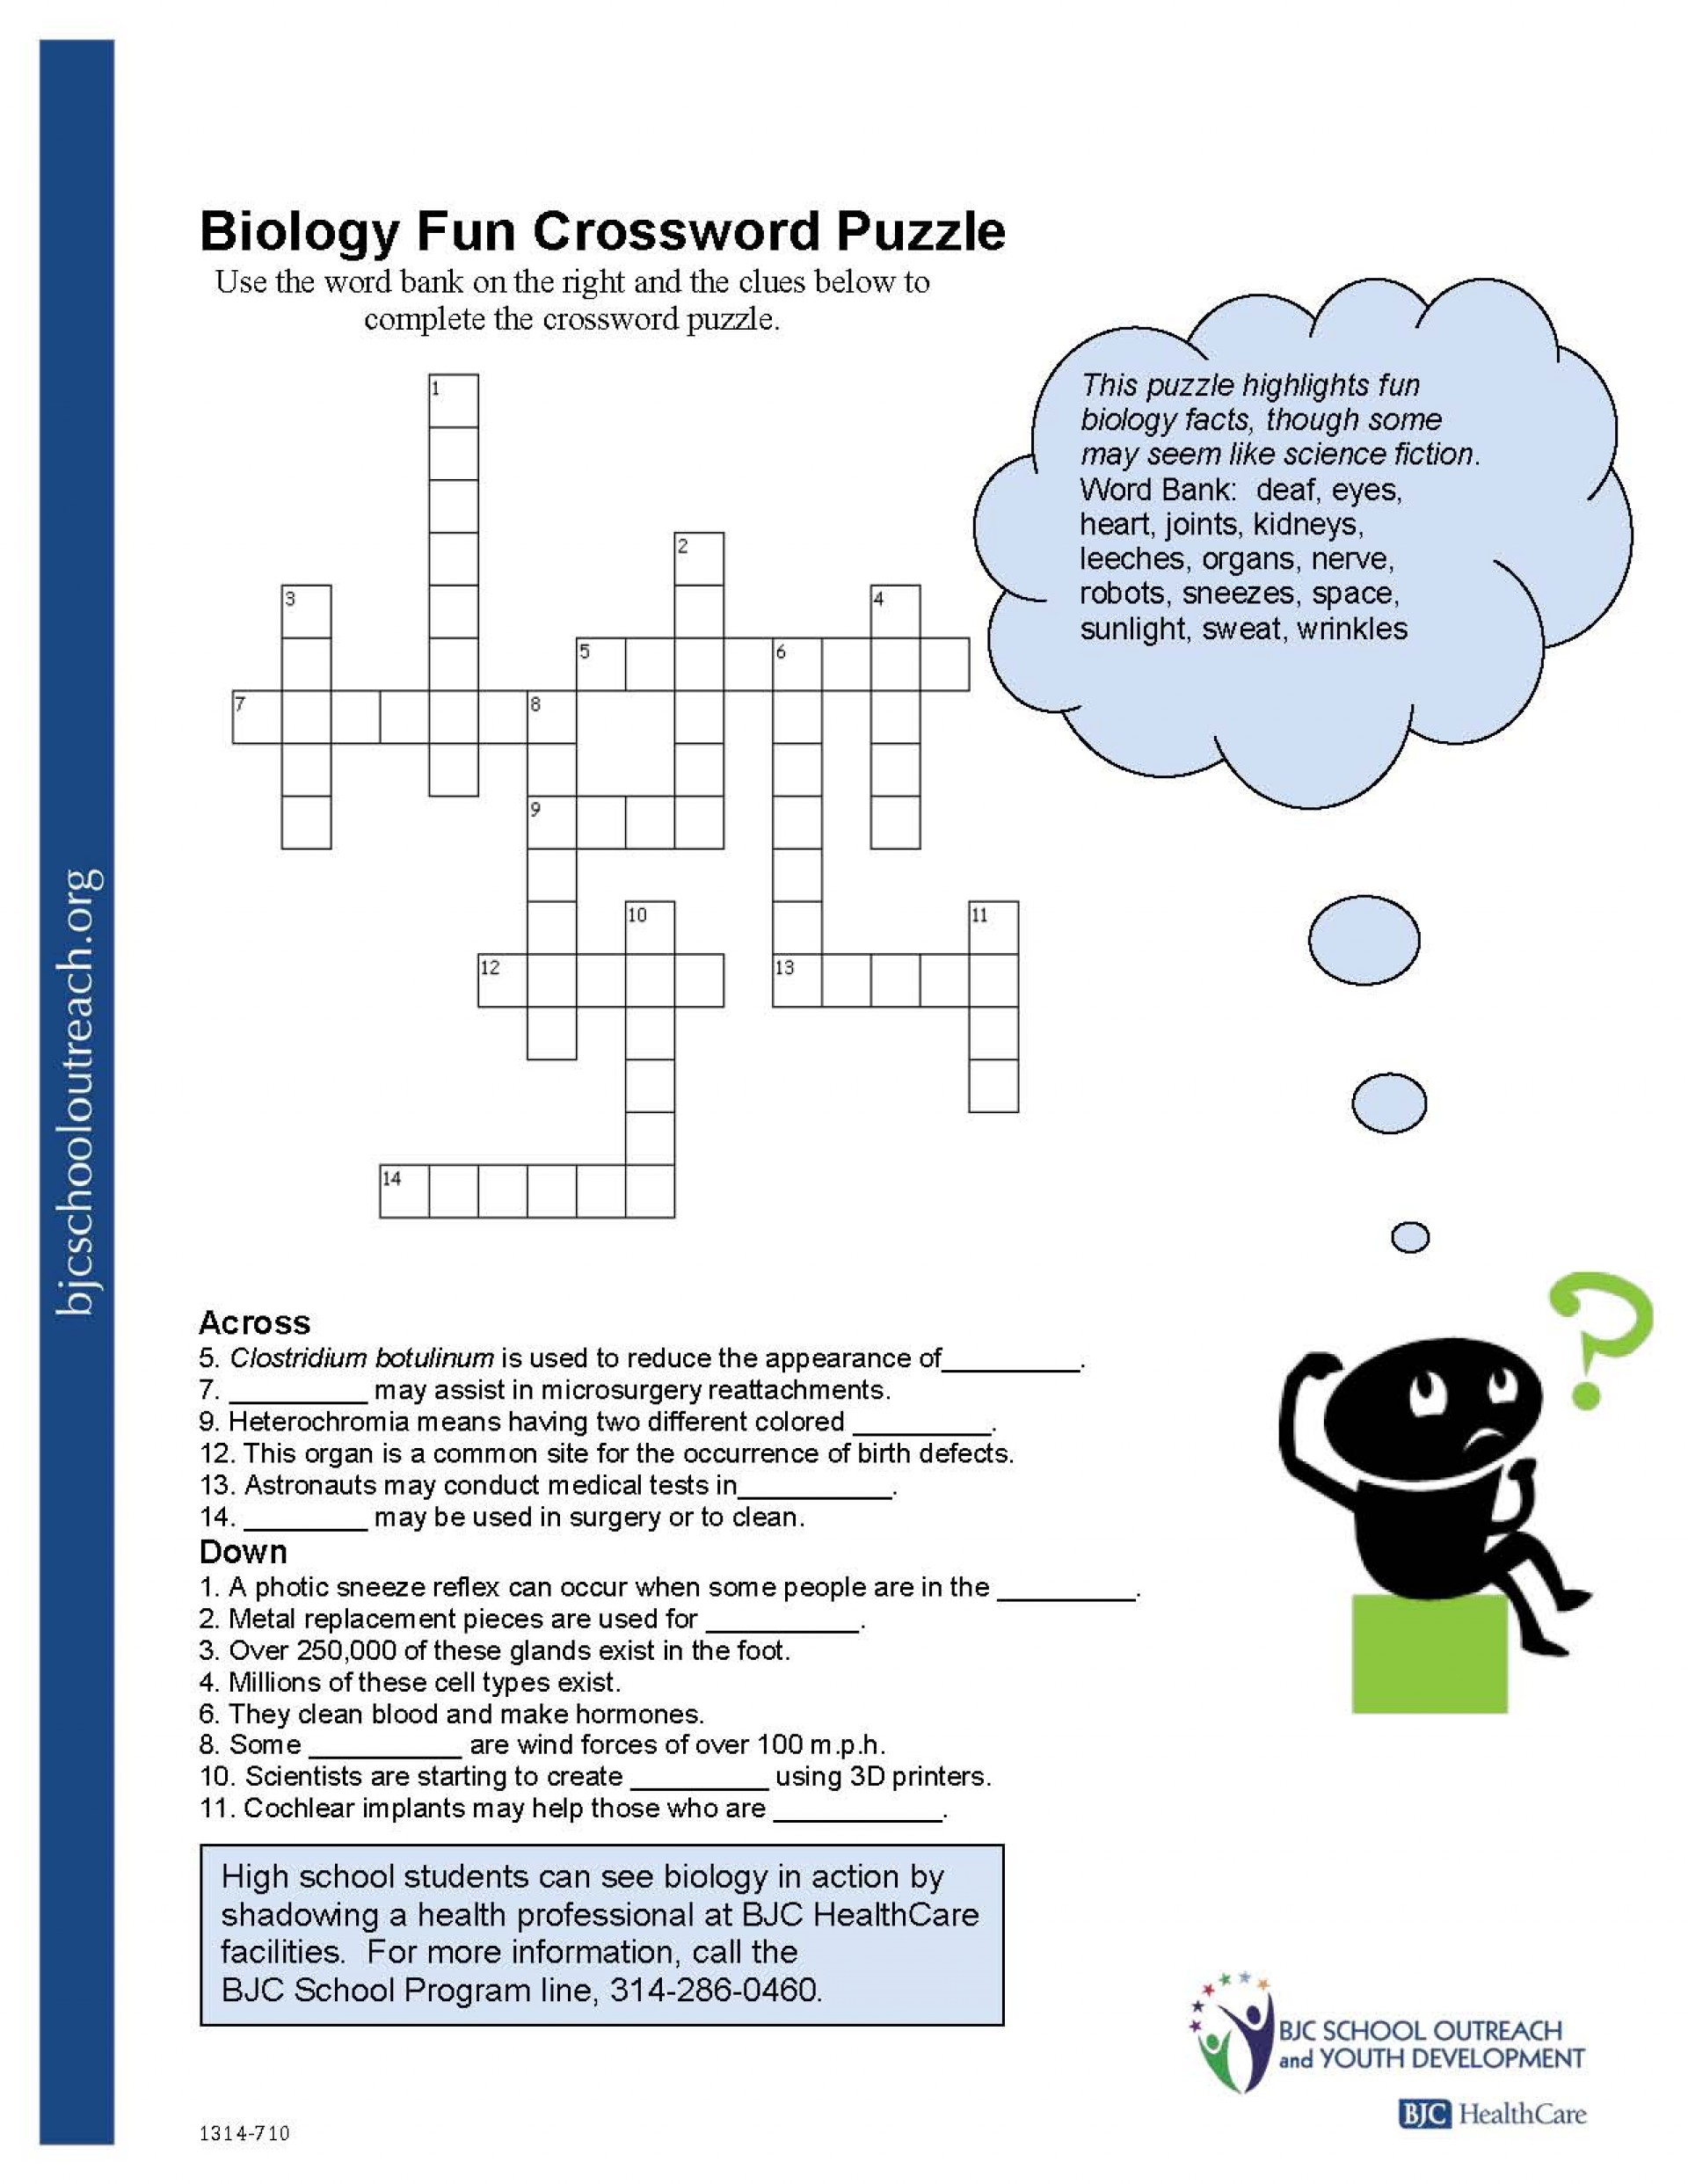 Crosswords Crossword Puzzle Worksheets For Middle School Biology Fun - Printable Worksheets Crossword Puzzles